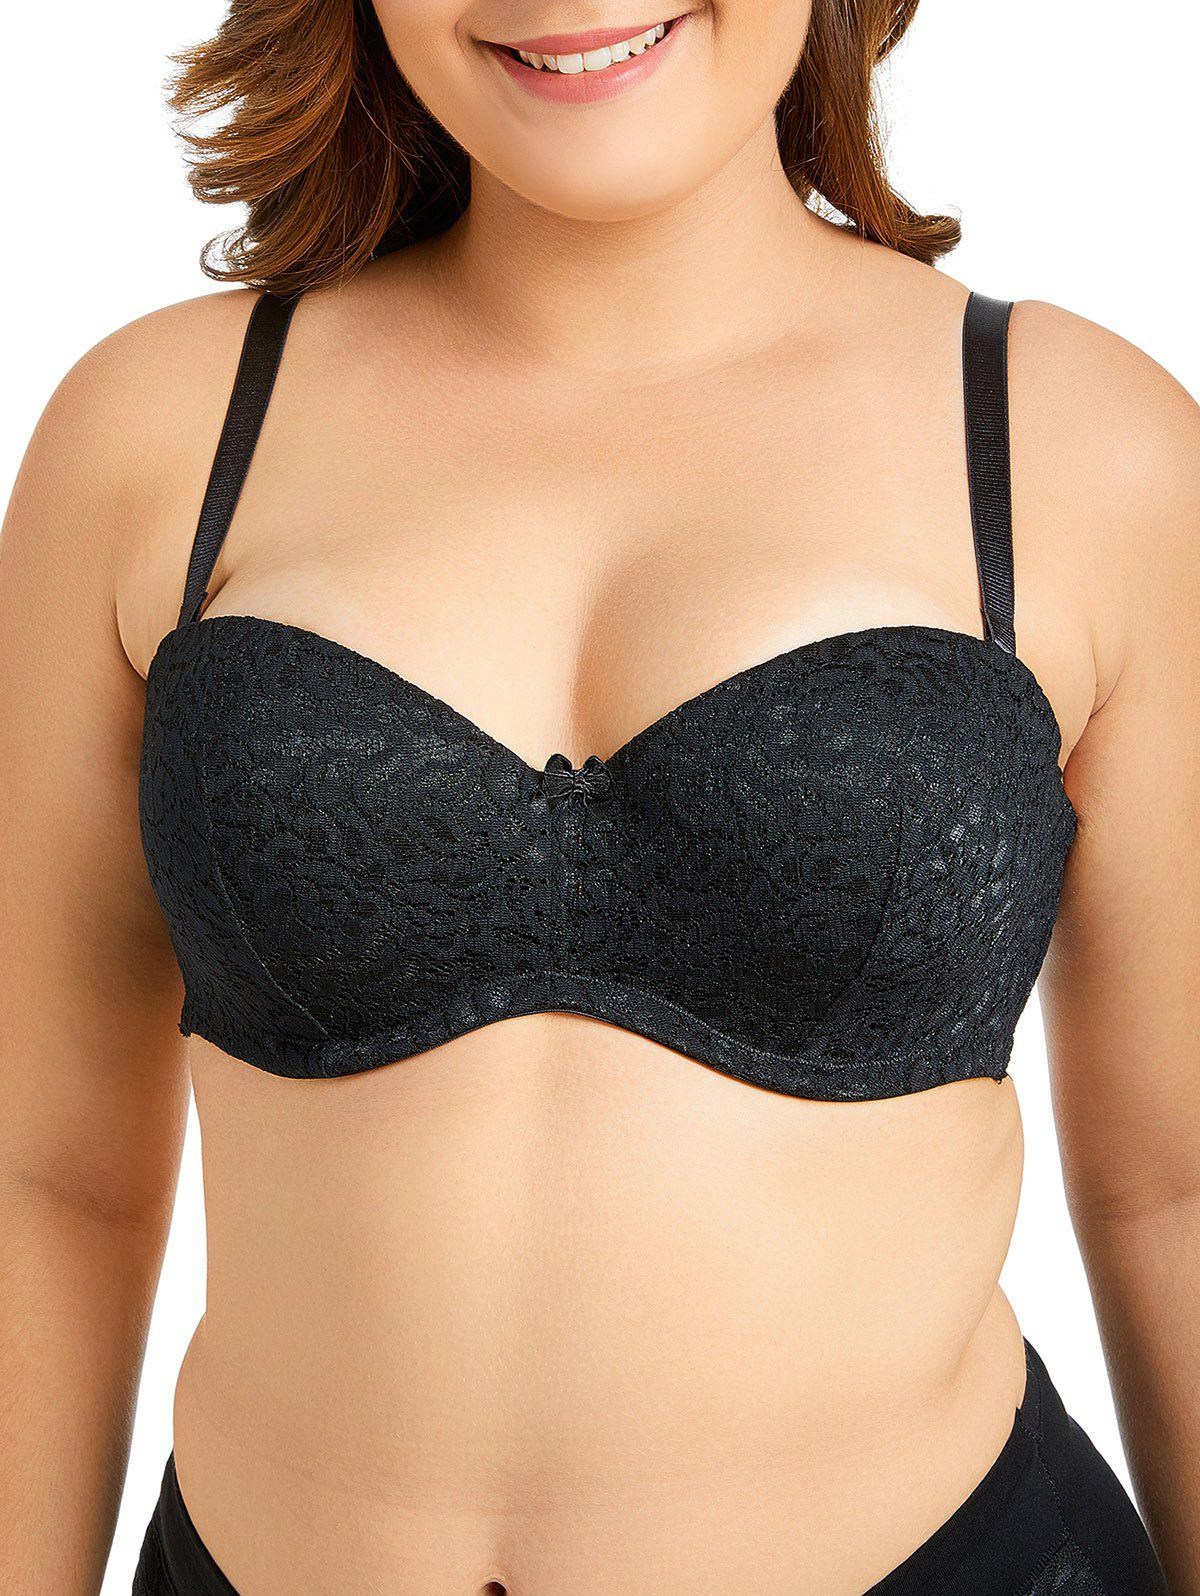 Shop Plus Size Bowknot Lace Bra